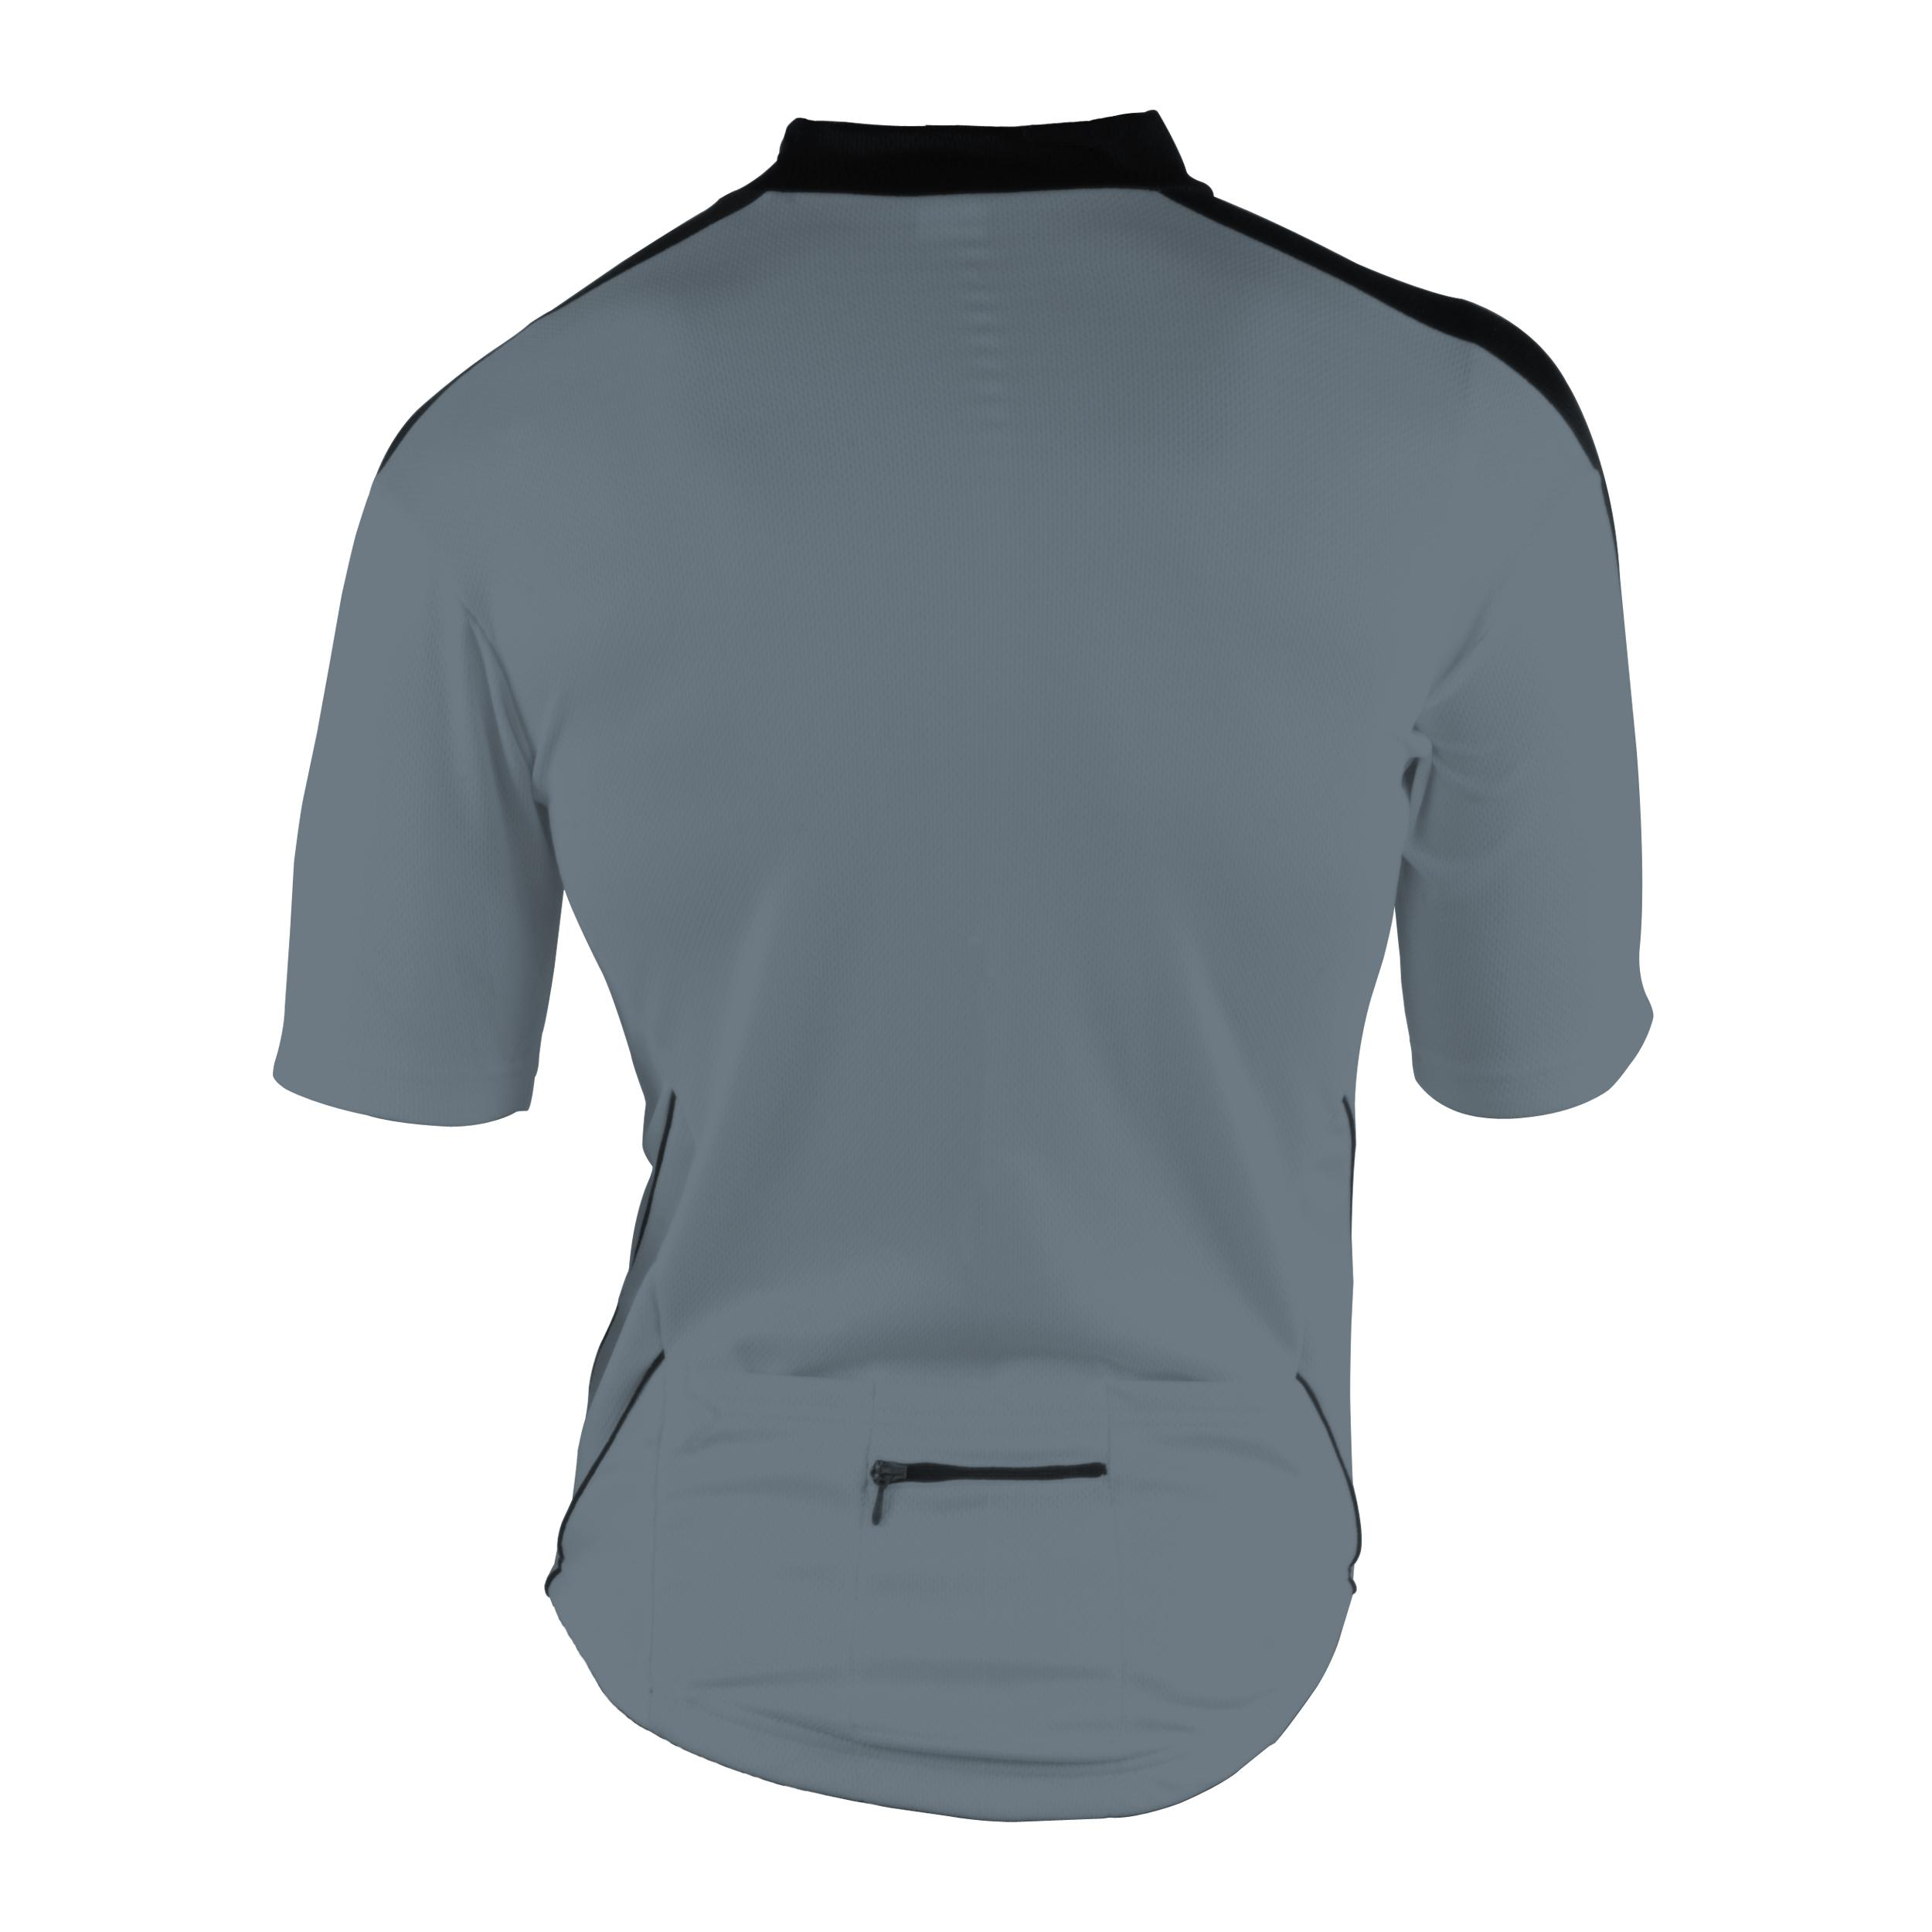 Cycle Force Men's M-Wave Dark Grey Bicycle Jersey (Large)